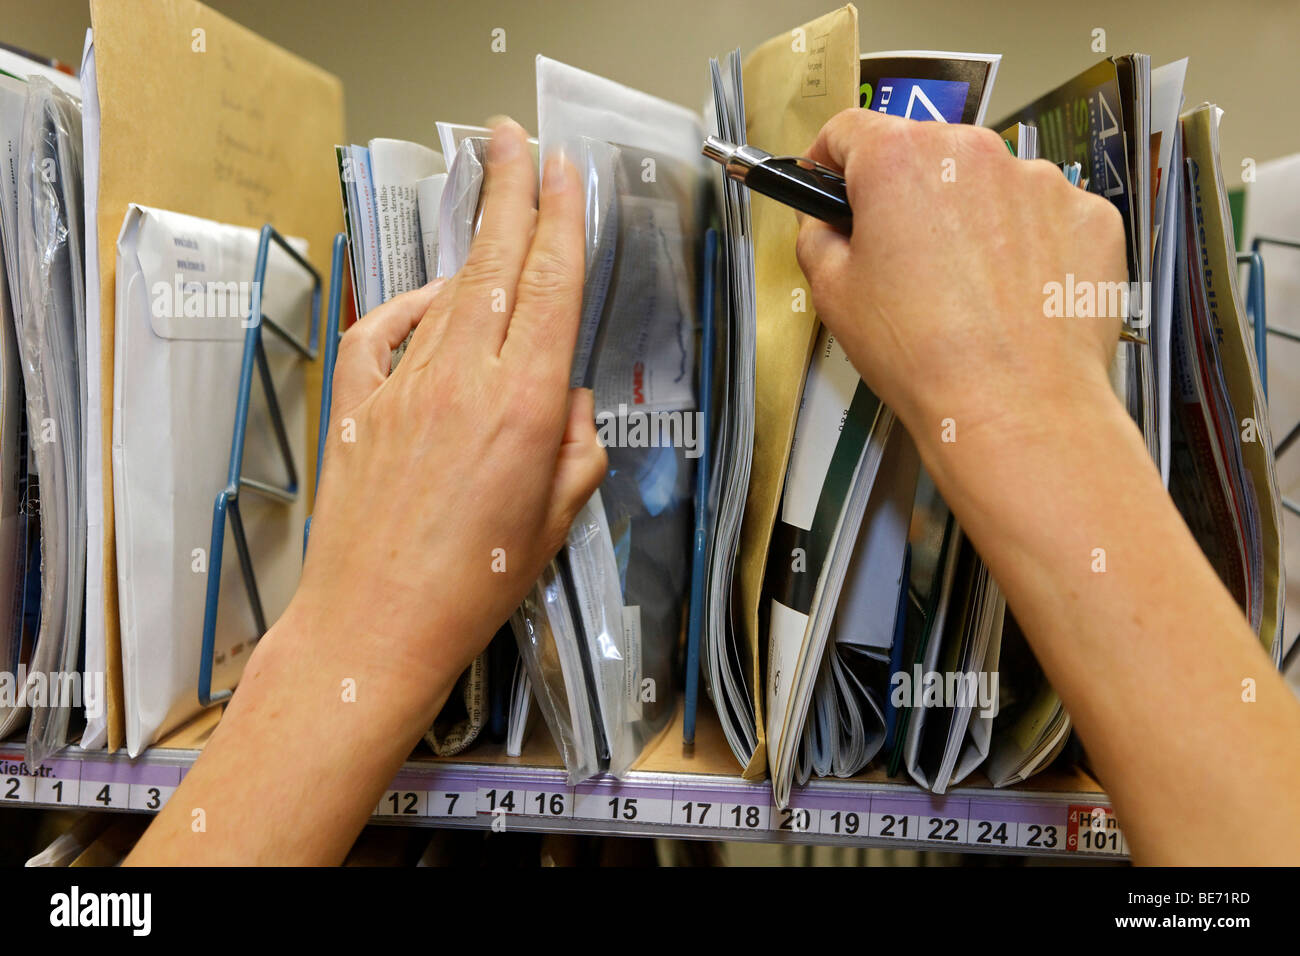 Mail carrier Annerose Schulze sorts her mail in the postal distribution center of the Deutsche Post AG German Mail - Stock Image